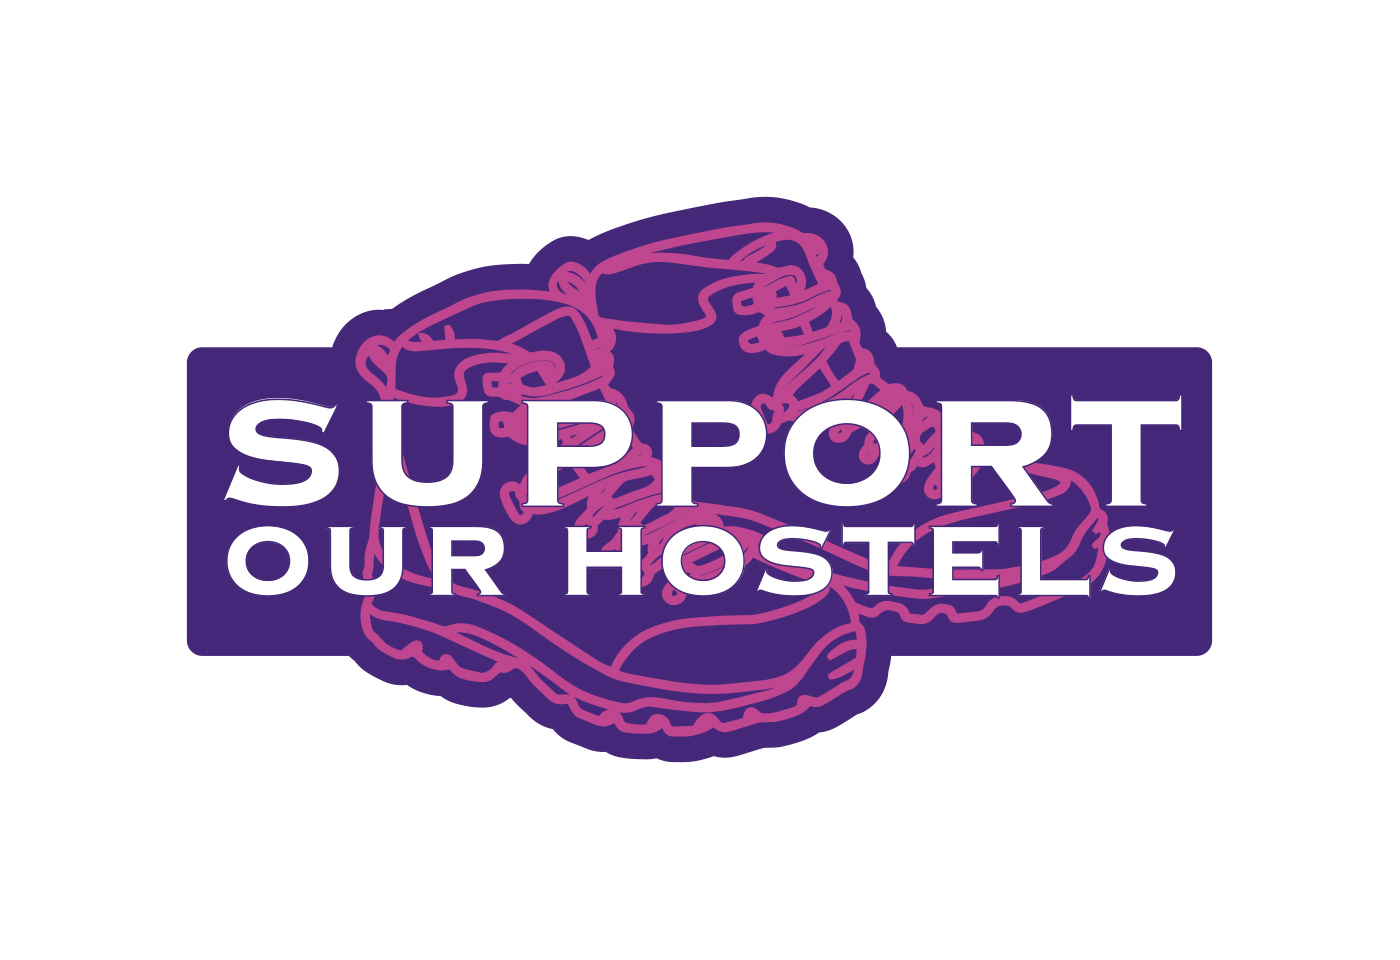 Support Our Hostels